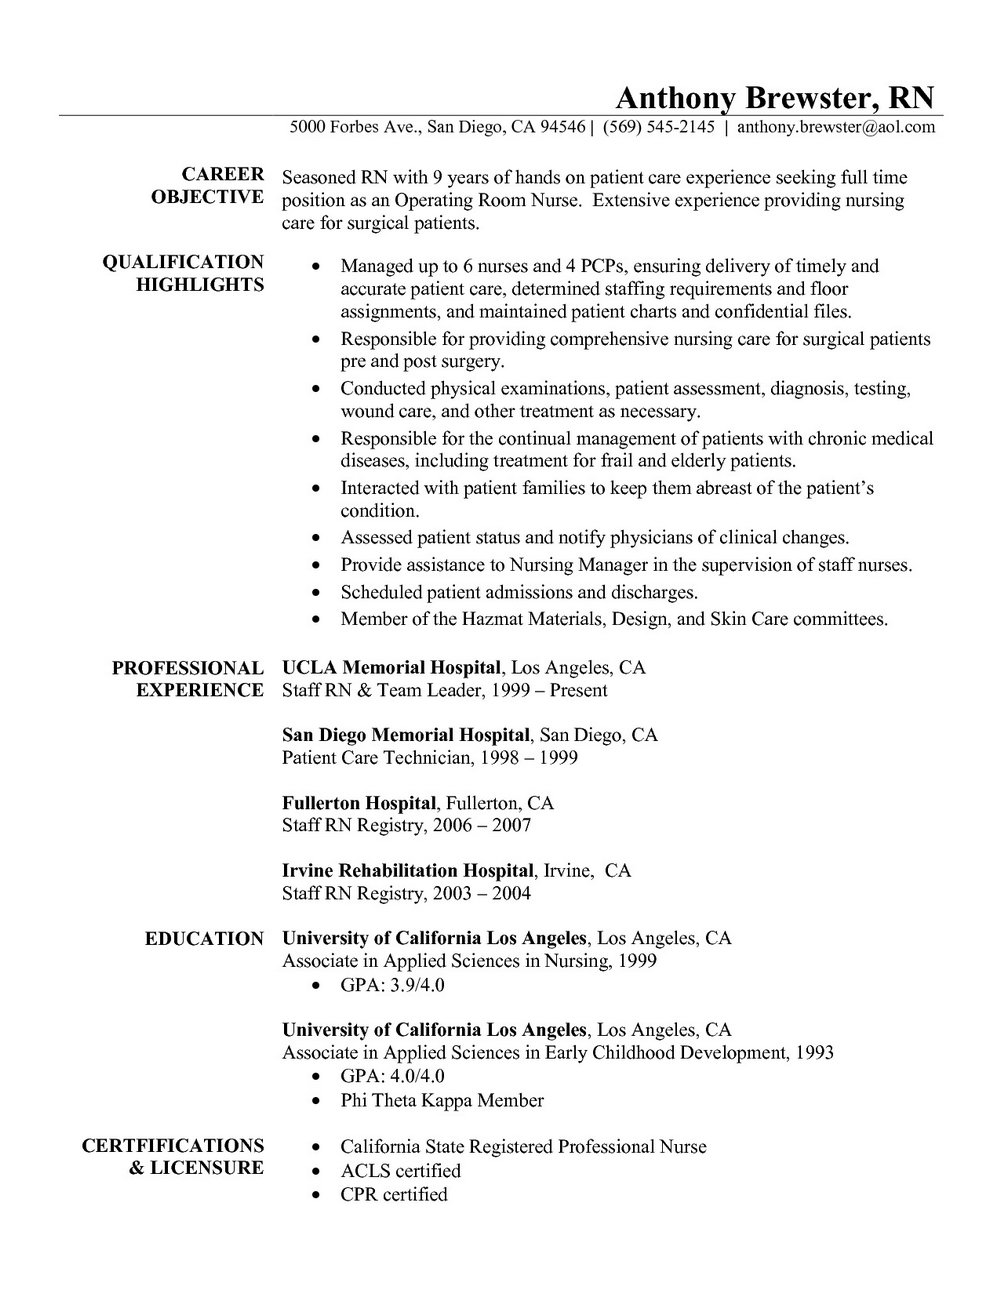 Resume Format For Nurses Freshers